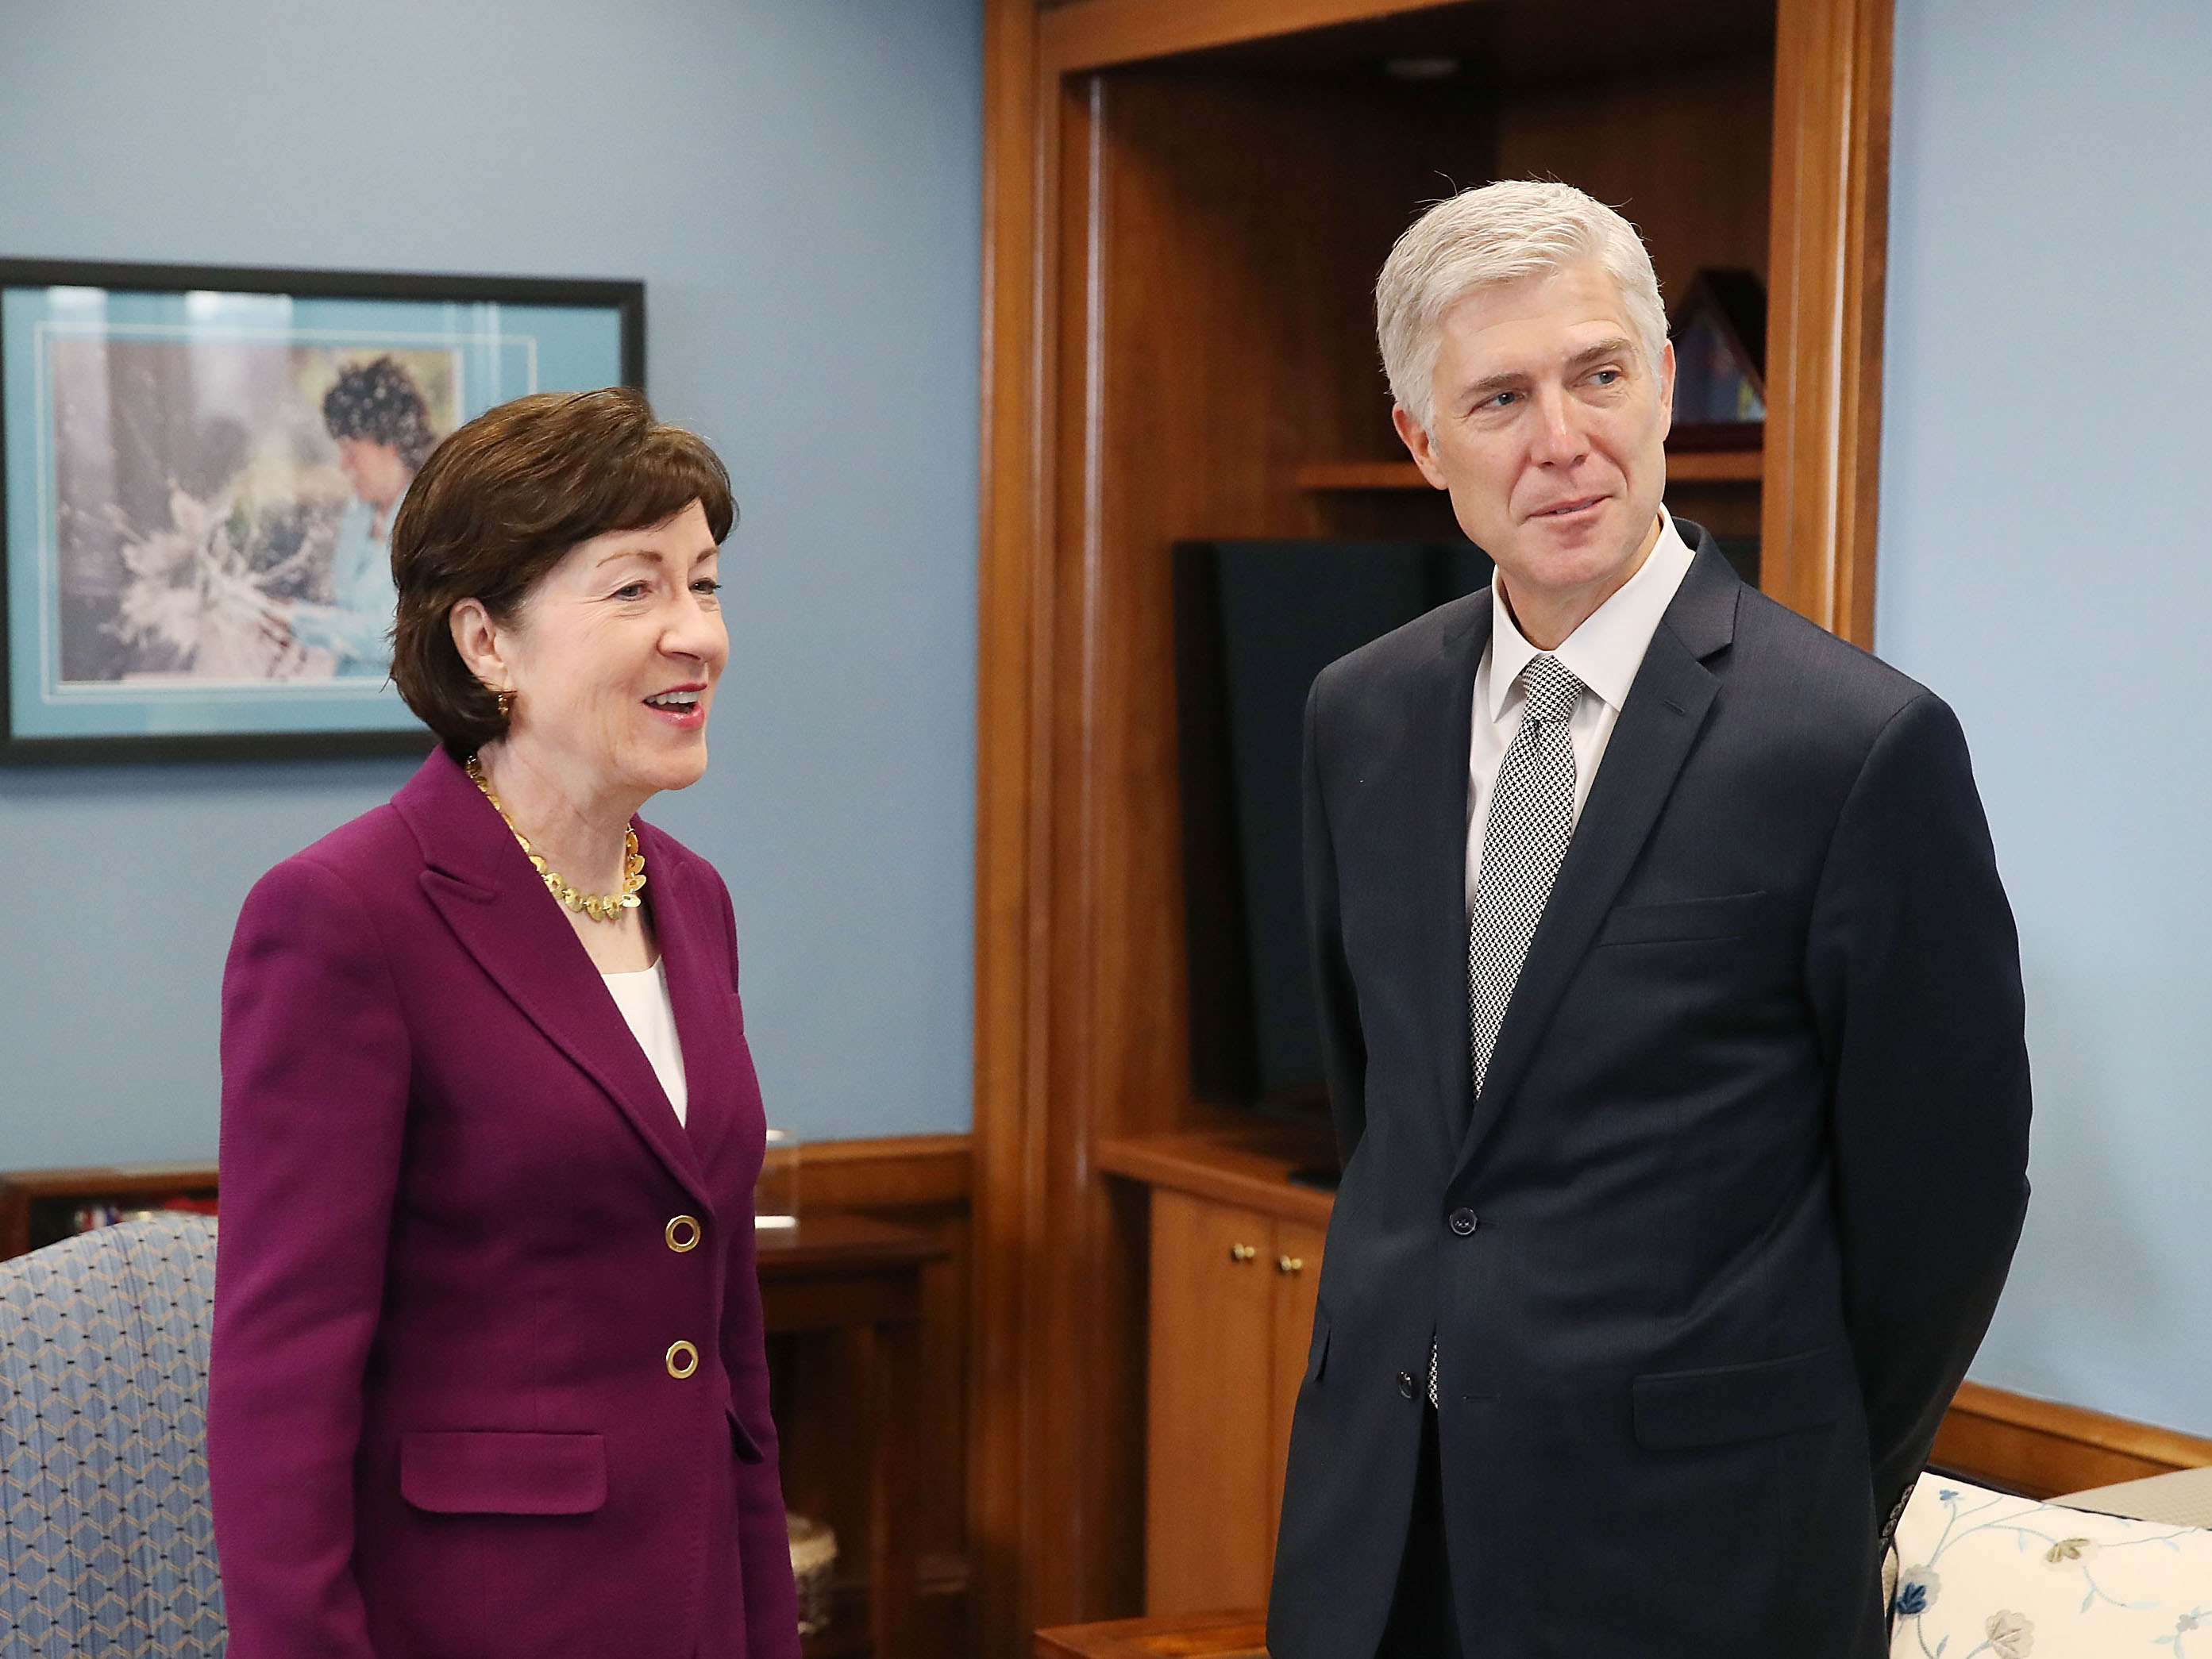 Sen. Susan Collins (R-ME) meets with Supreme Court nominee Neil Gorsuch in her office on Capitol Hill in February.